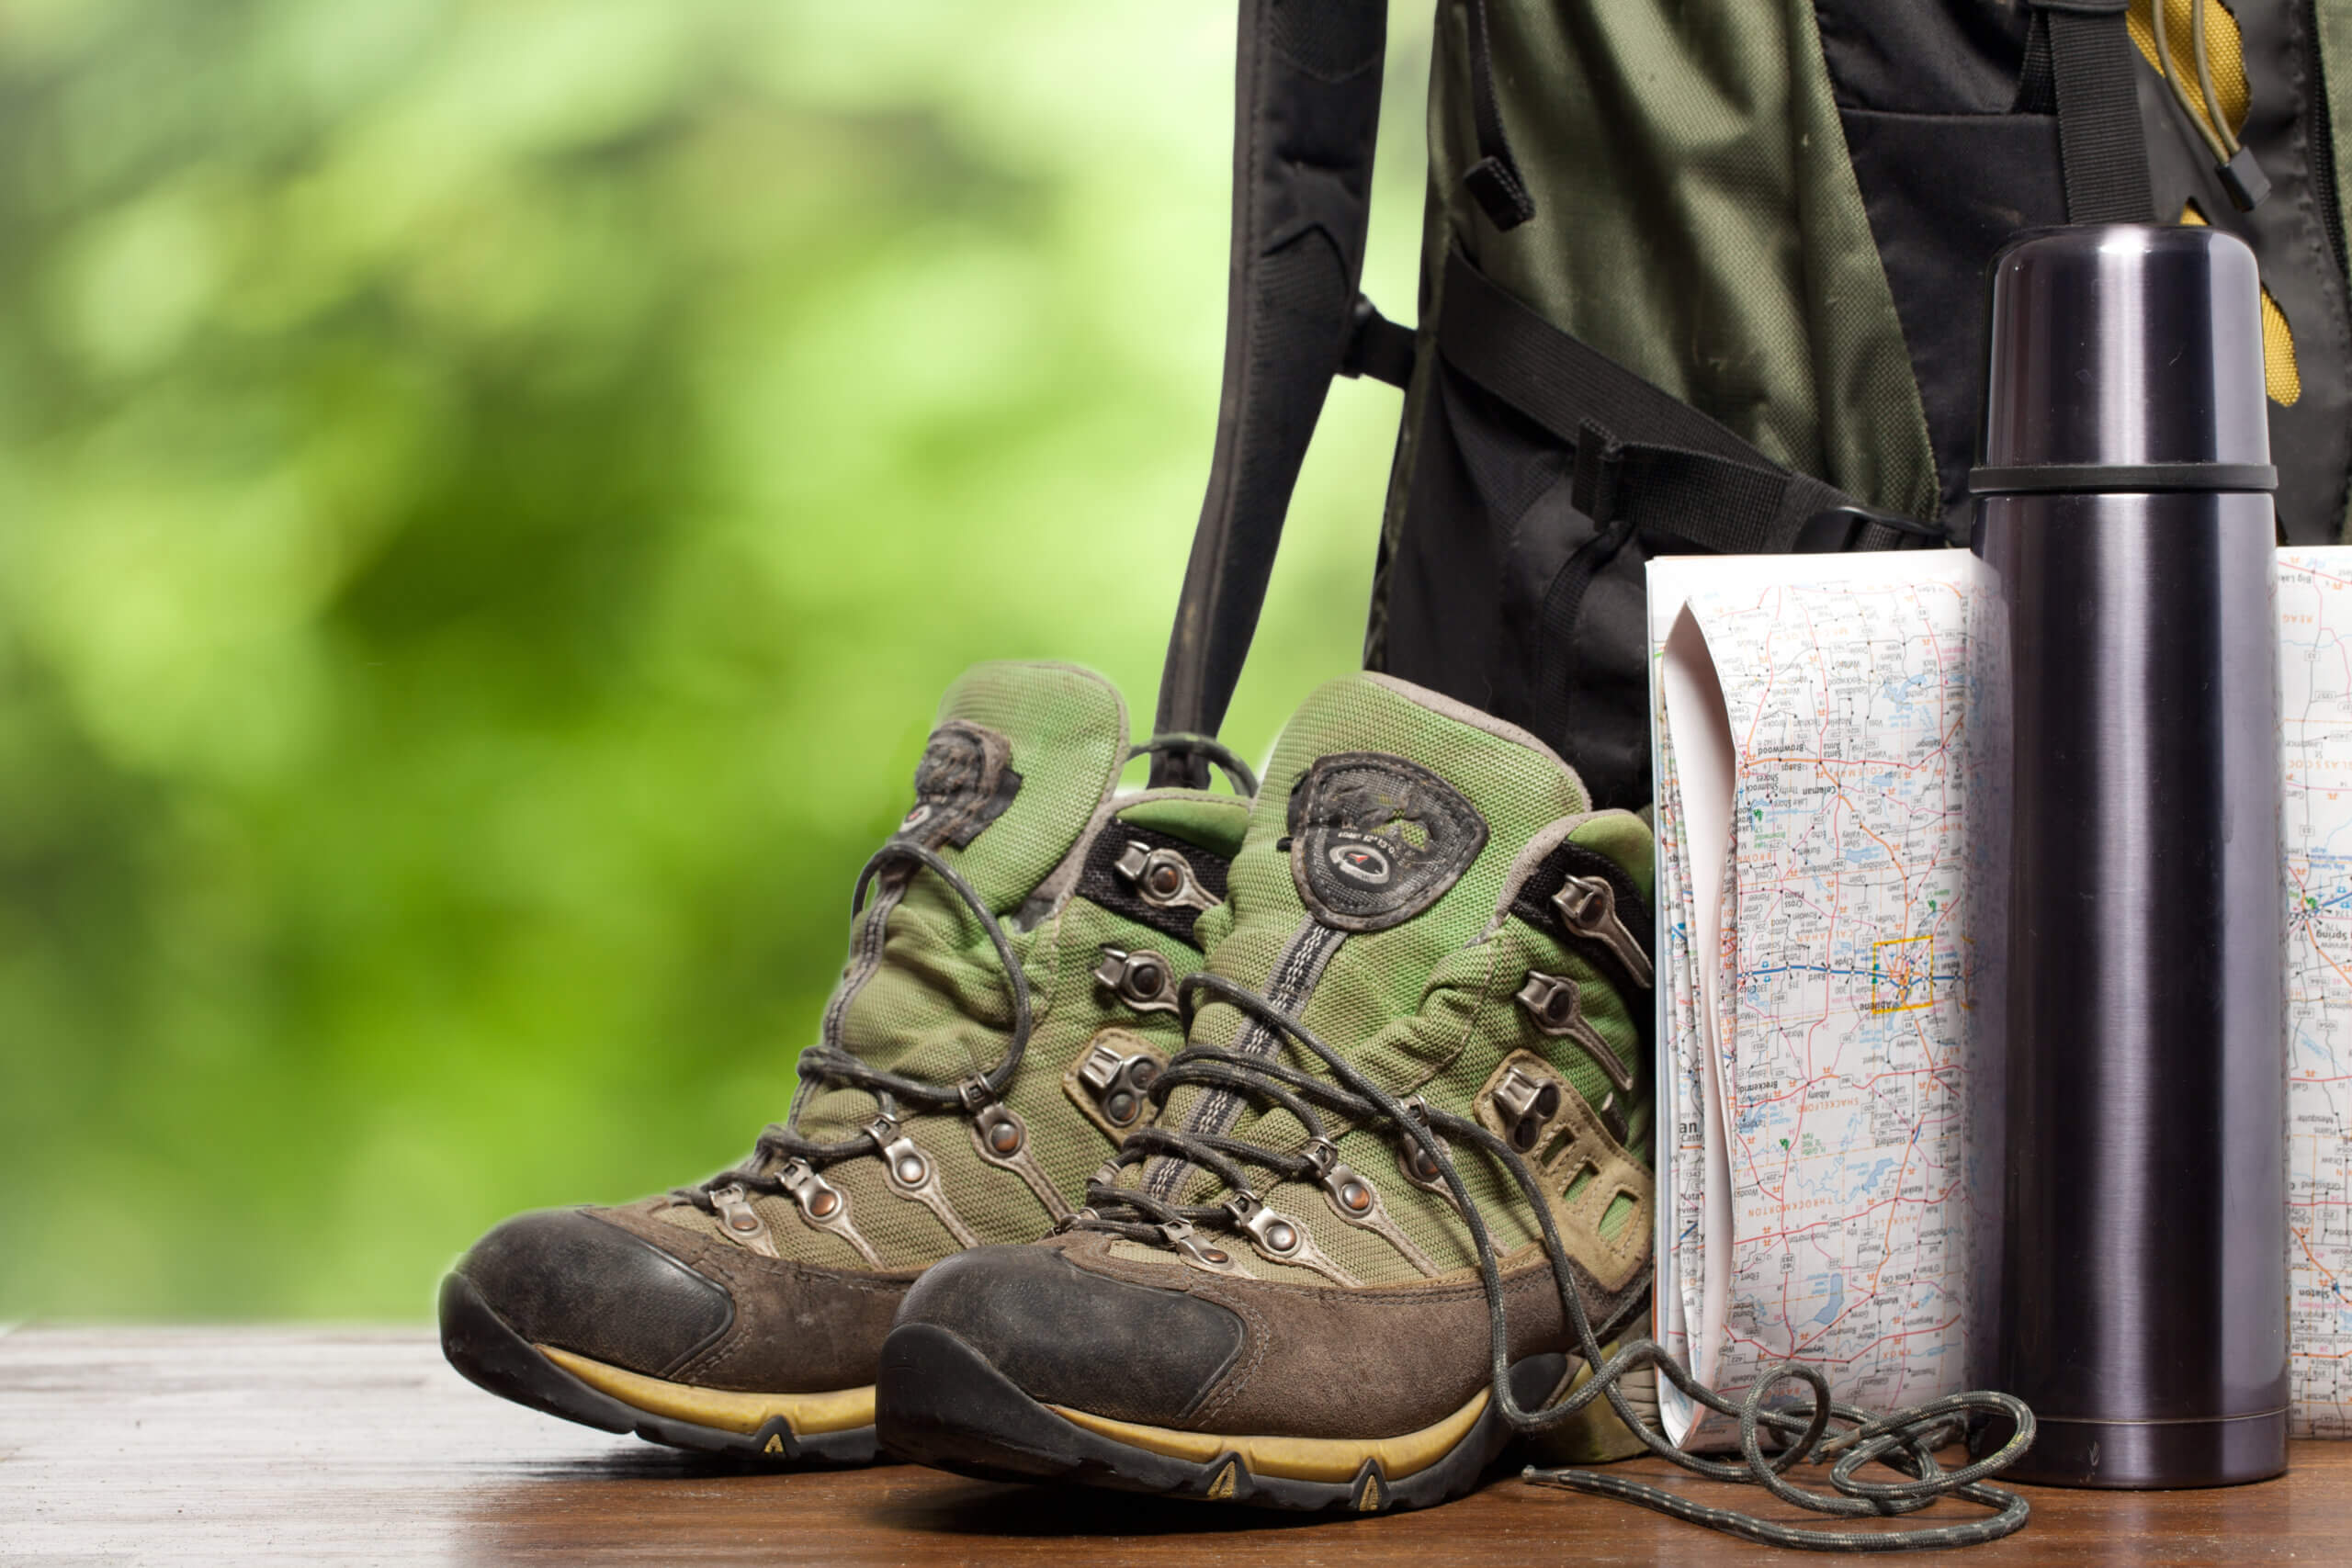 Shoes for camping